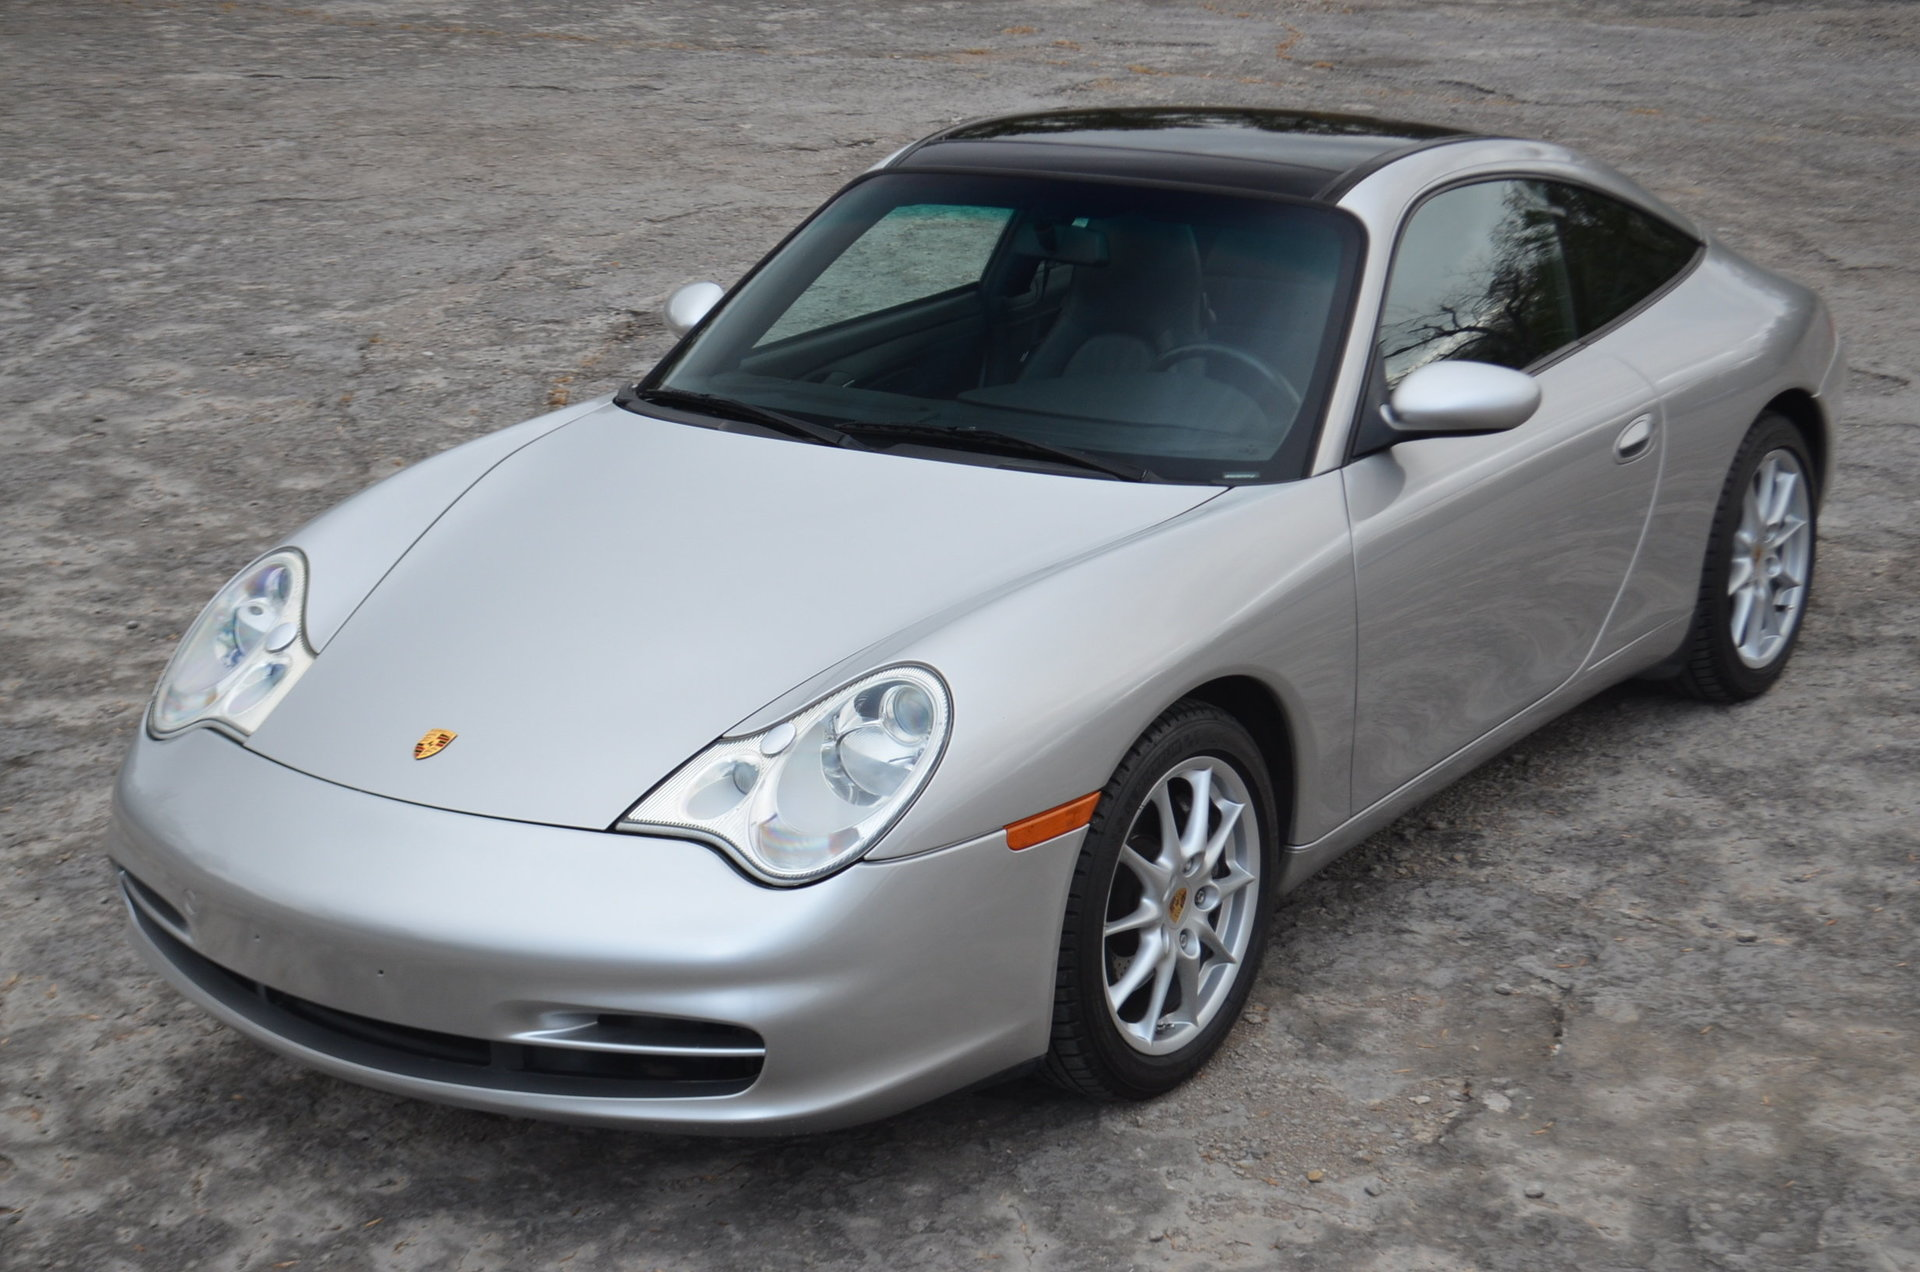 2002 porsche 911 for sale 71315 mcg. Black Bedroom Furniture Sets. Home Design Ideas